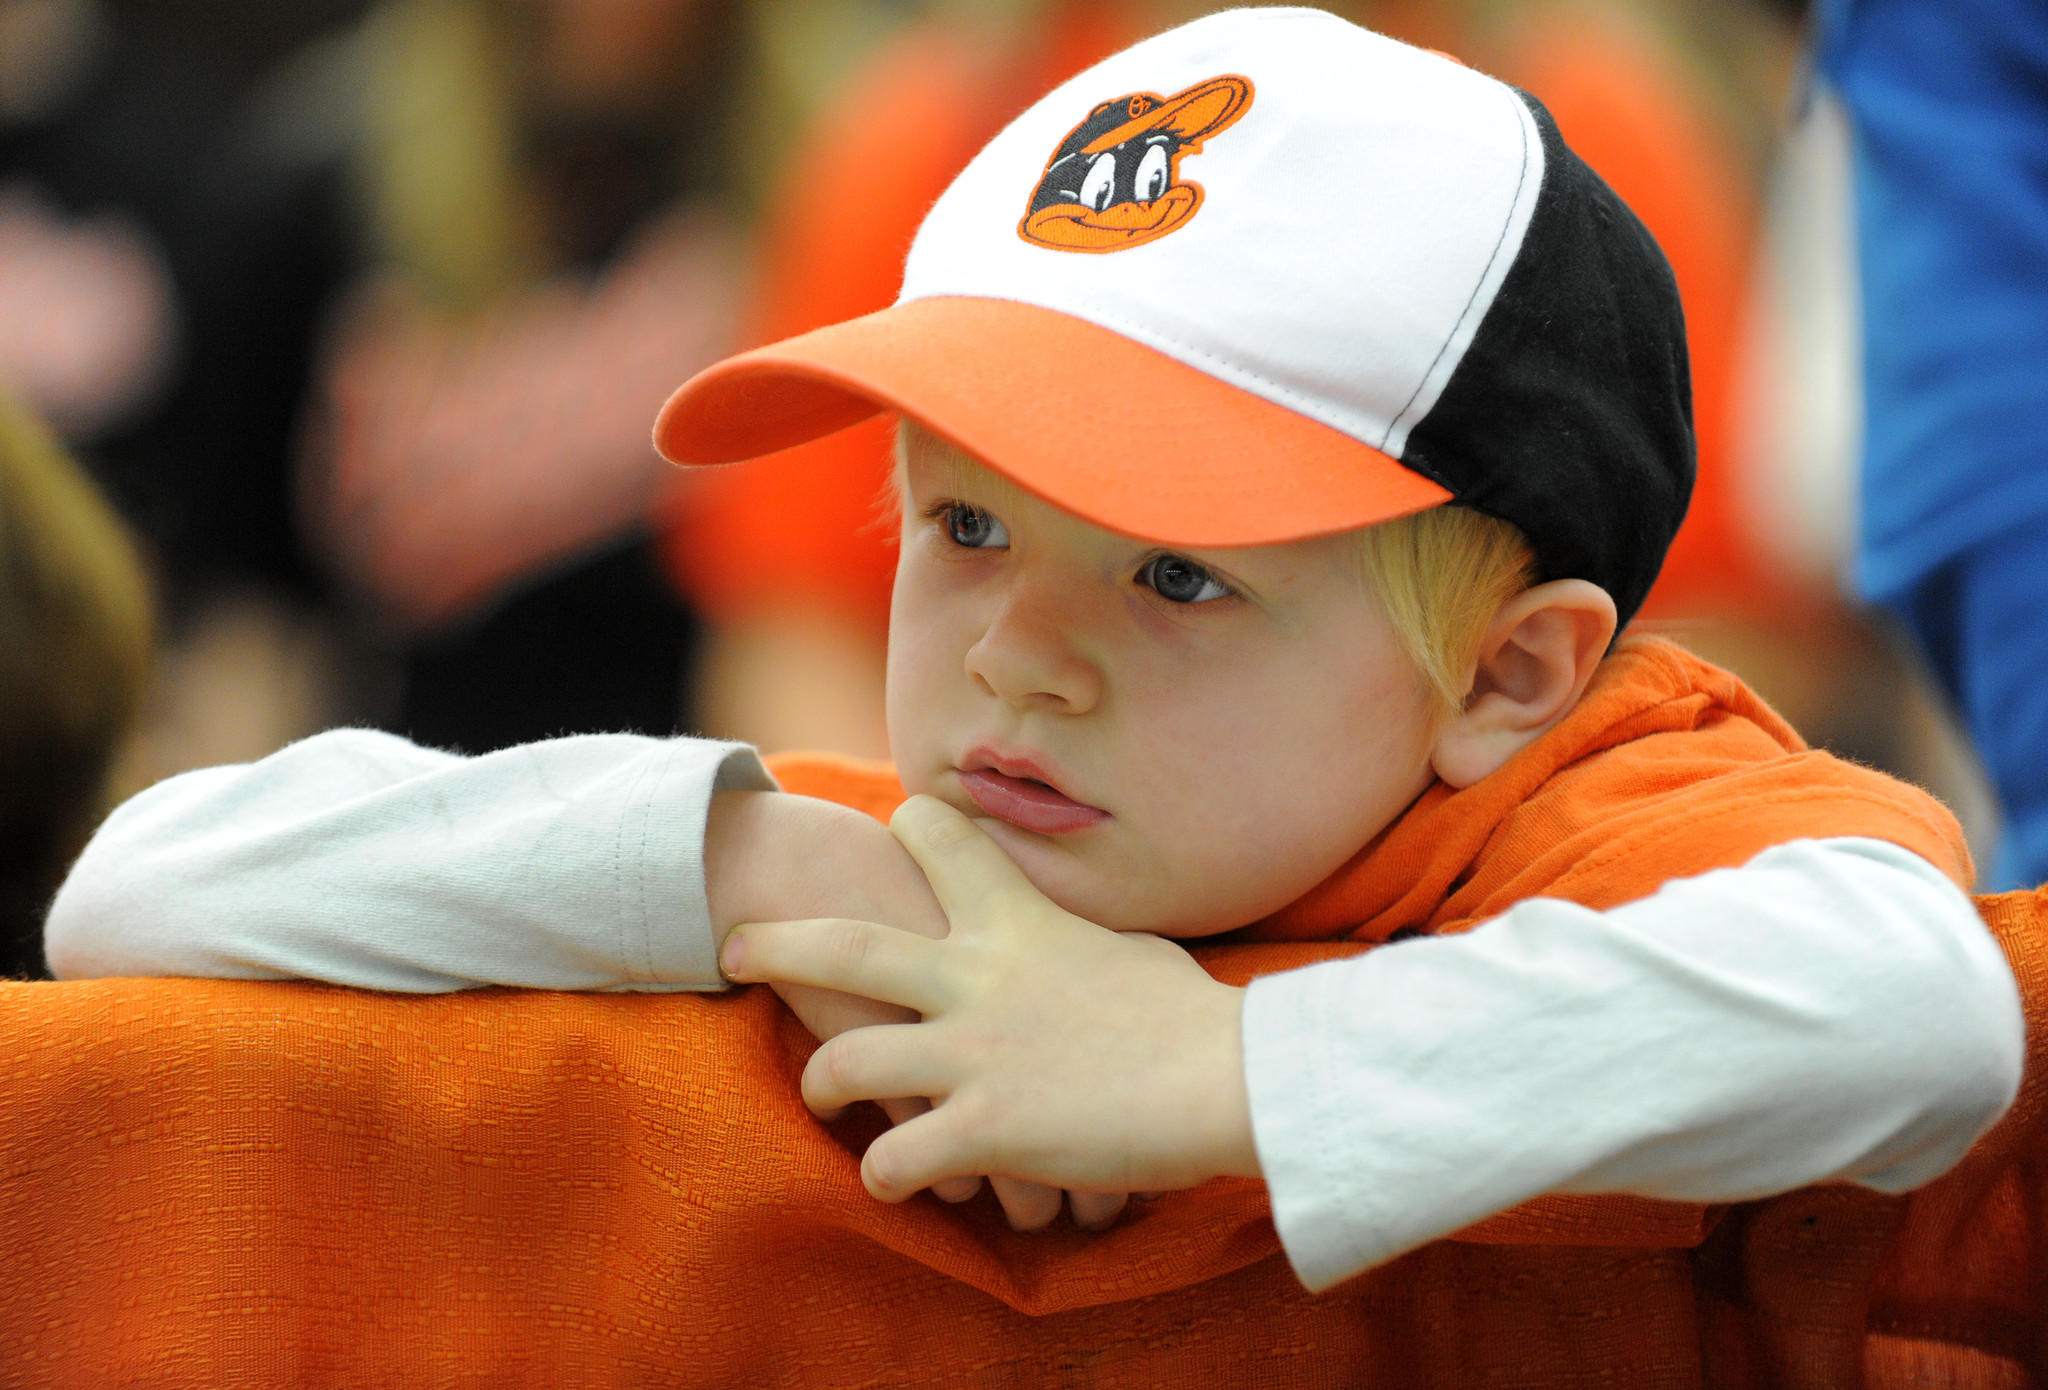 Chene Wyndham, 5, of Hanover takes in Orioles FanFest last year.